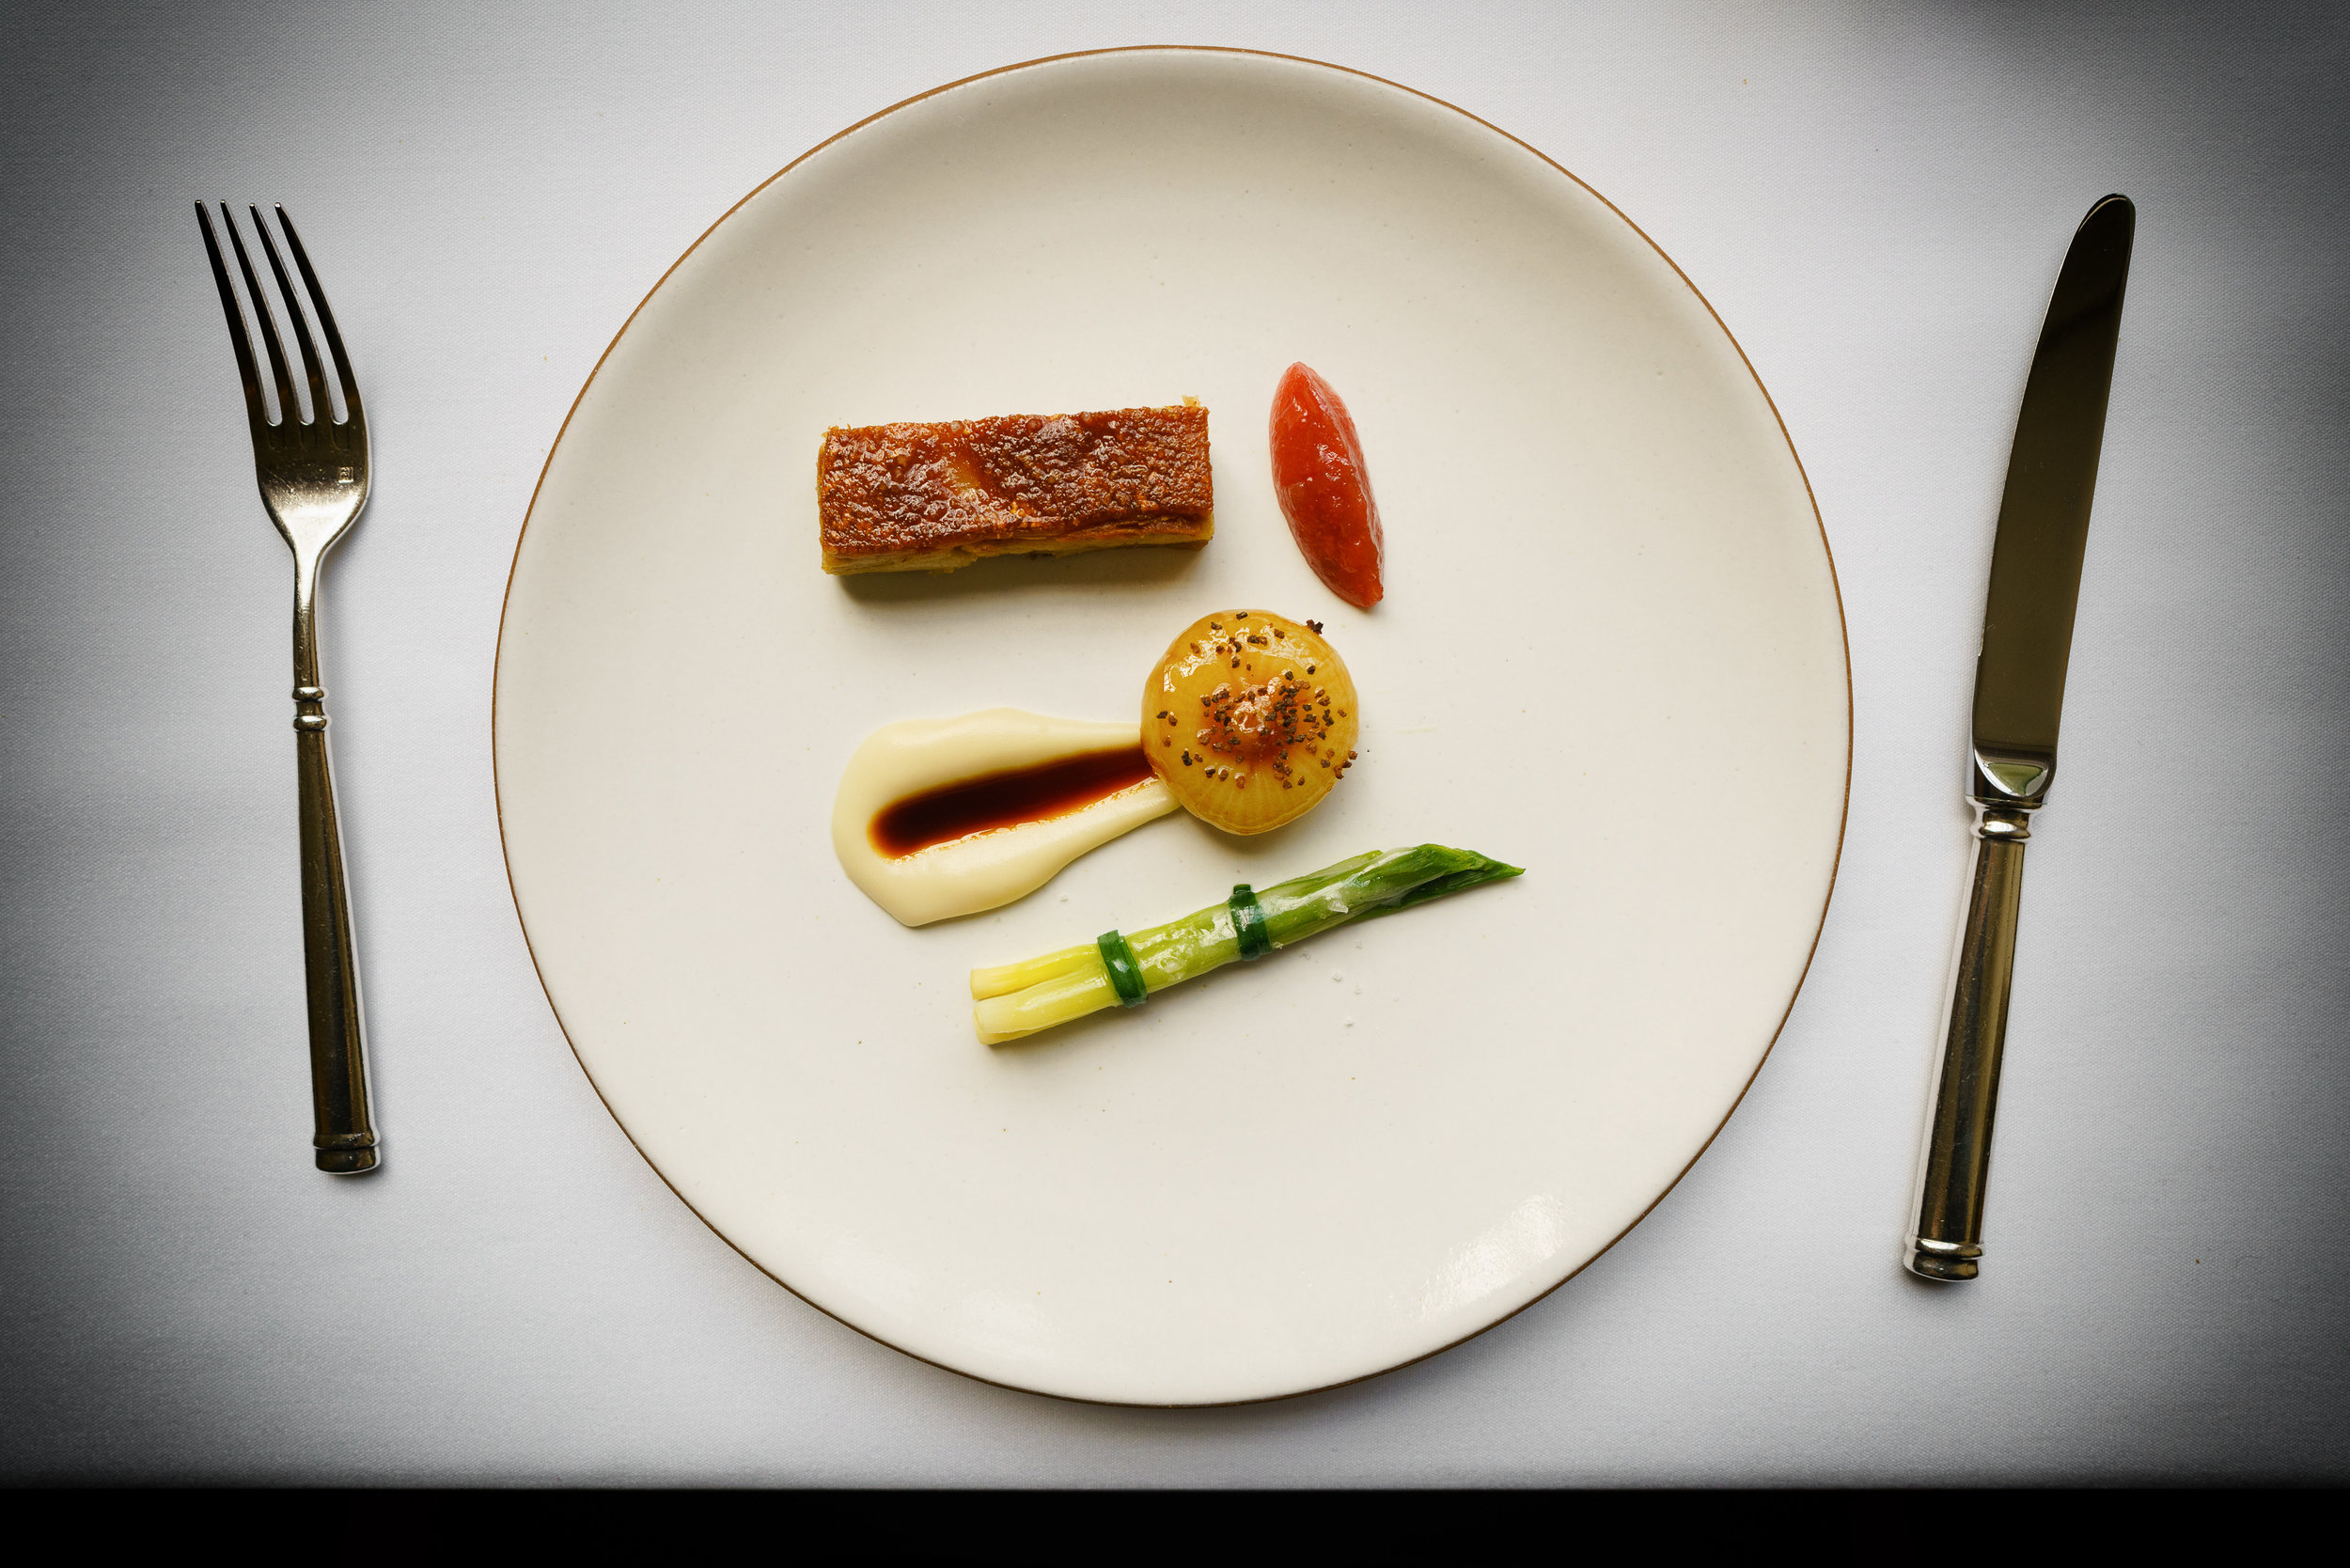 Suckling pig: config with rhubarb and cipollini onion (2002)